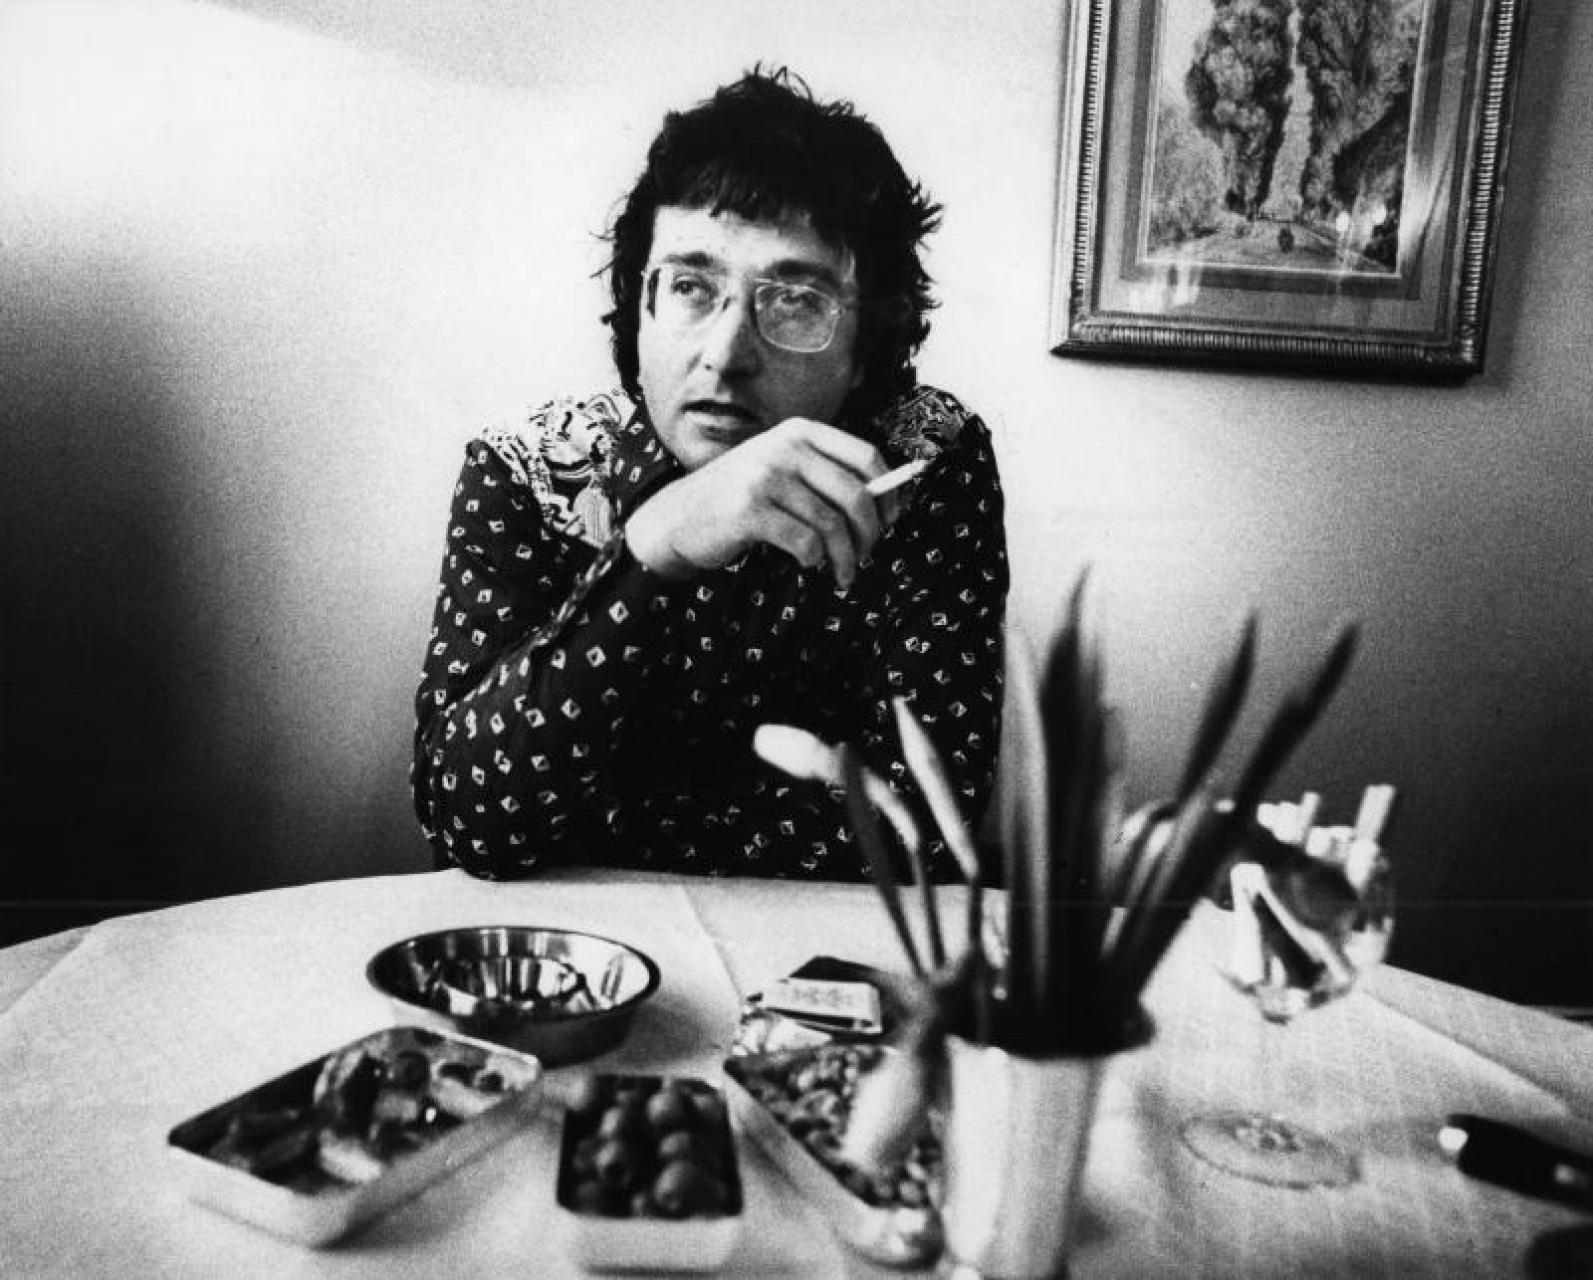 Portrait of Randy Newman by Gusbert Hanekroot / Getty Images